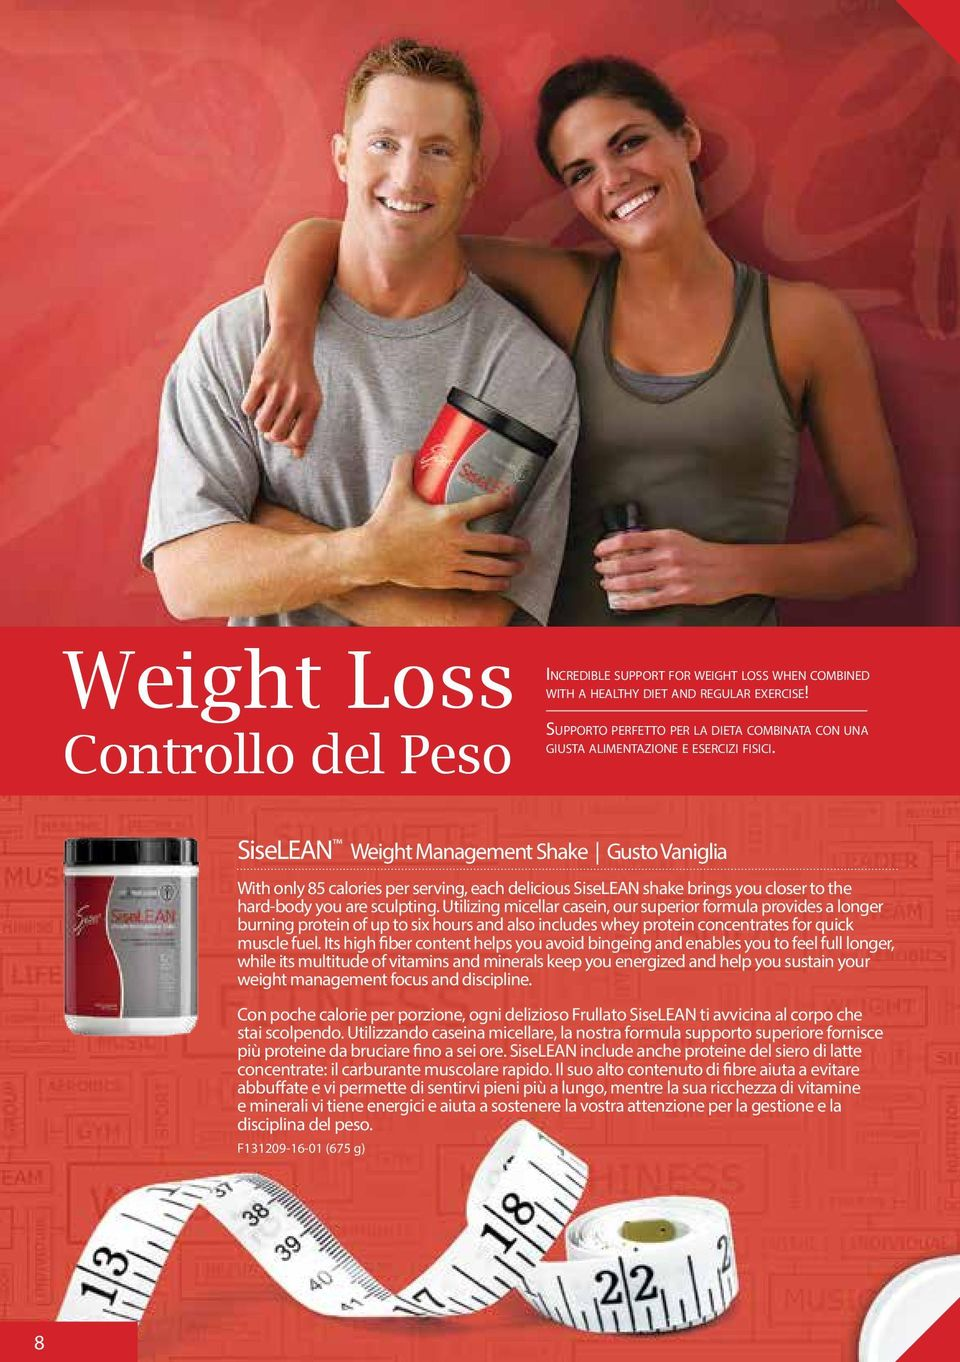 SiseLEAN Weight Management Shake Gusto Vaniglia With only 85 calories per serving, each delicious SiseLEAN shake brings you closer to the hard-body you are sculpting.